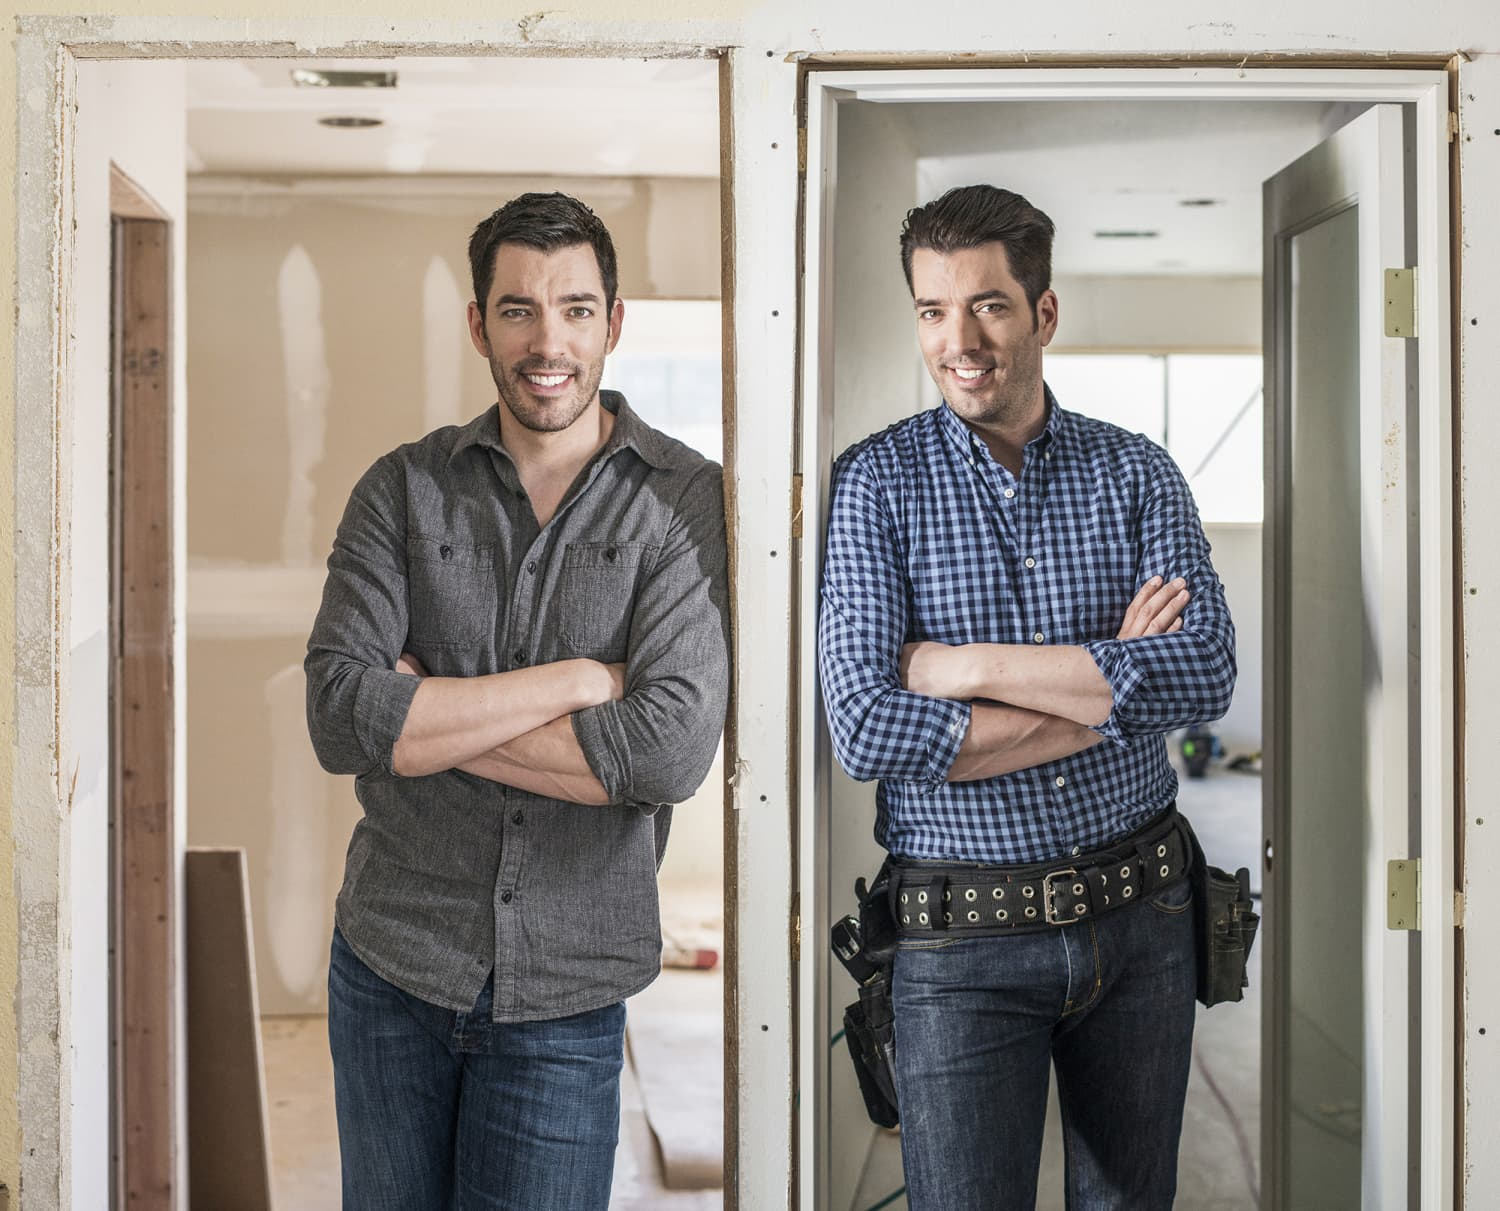 The Property Brothers' New Home Line at Kohl's Will Upgrade Your Living Room with Finds Under $75